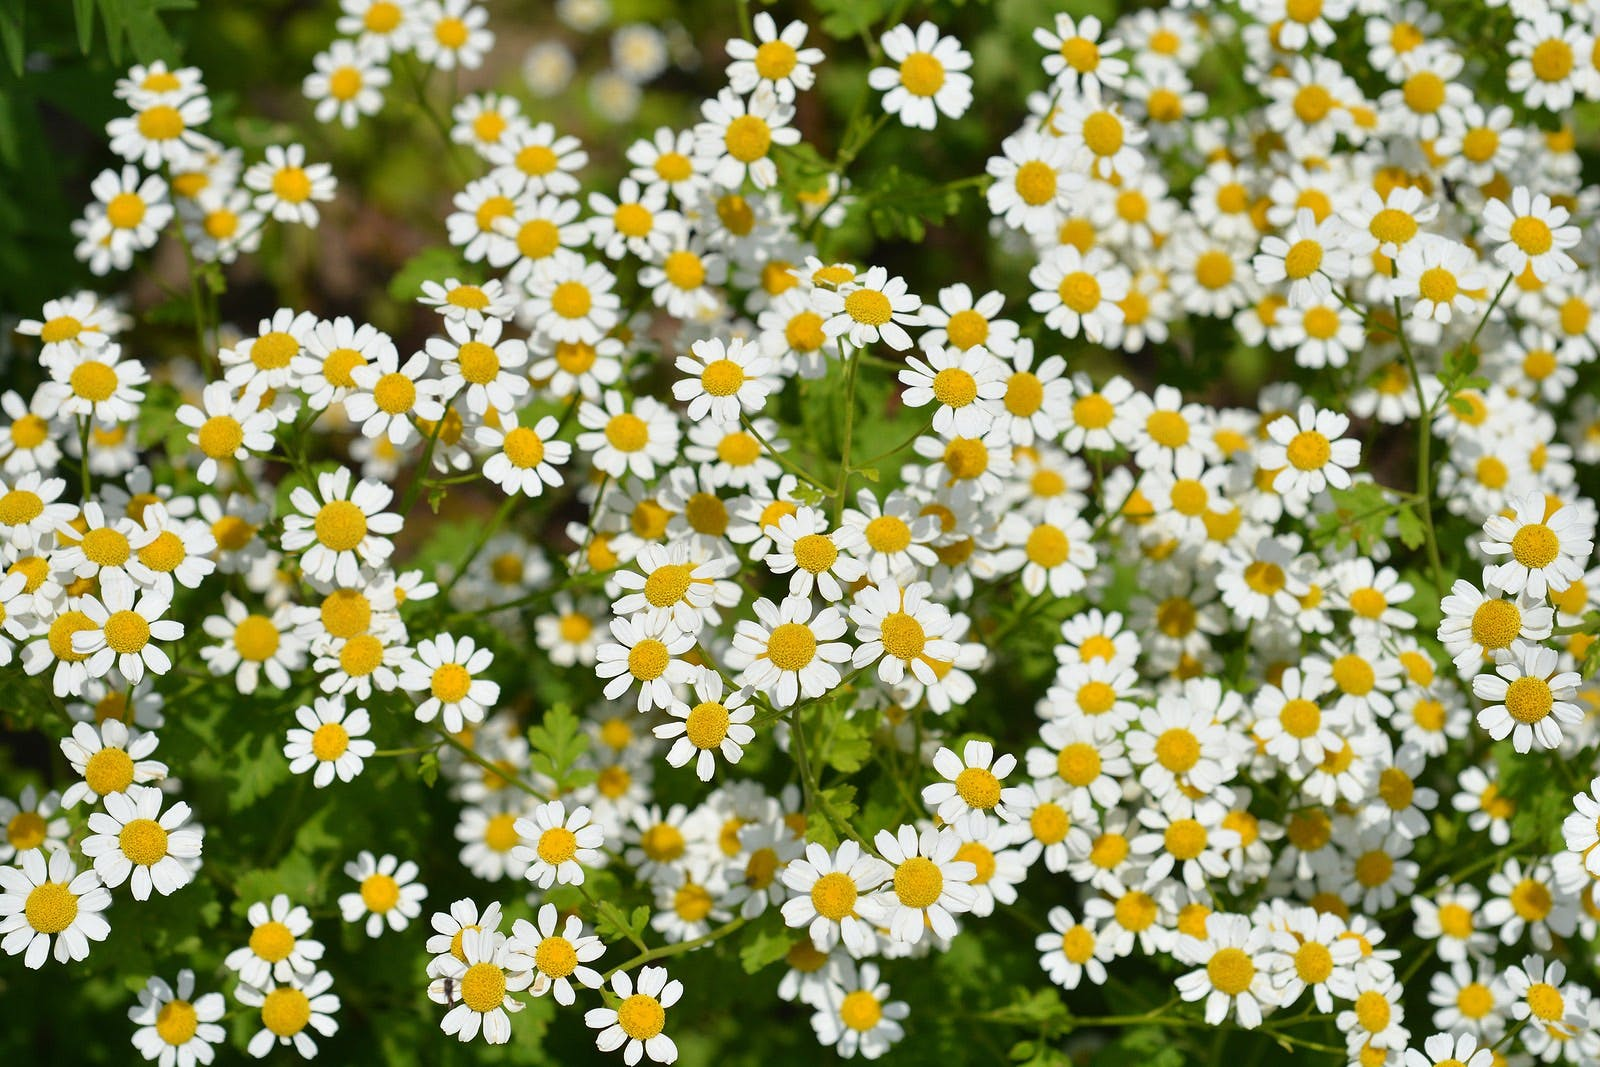 Multiple feverfew blossoms with white petals and yellow centers